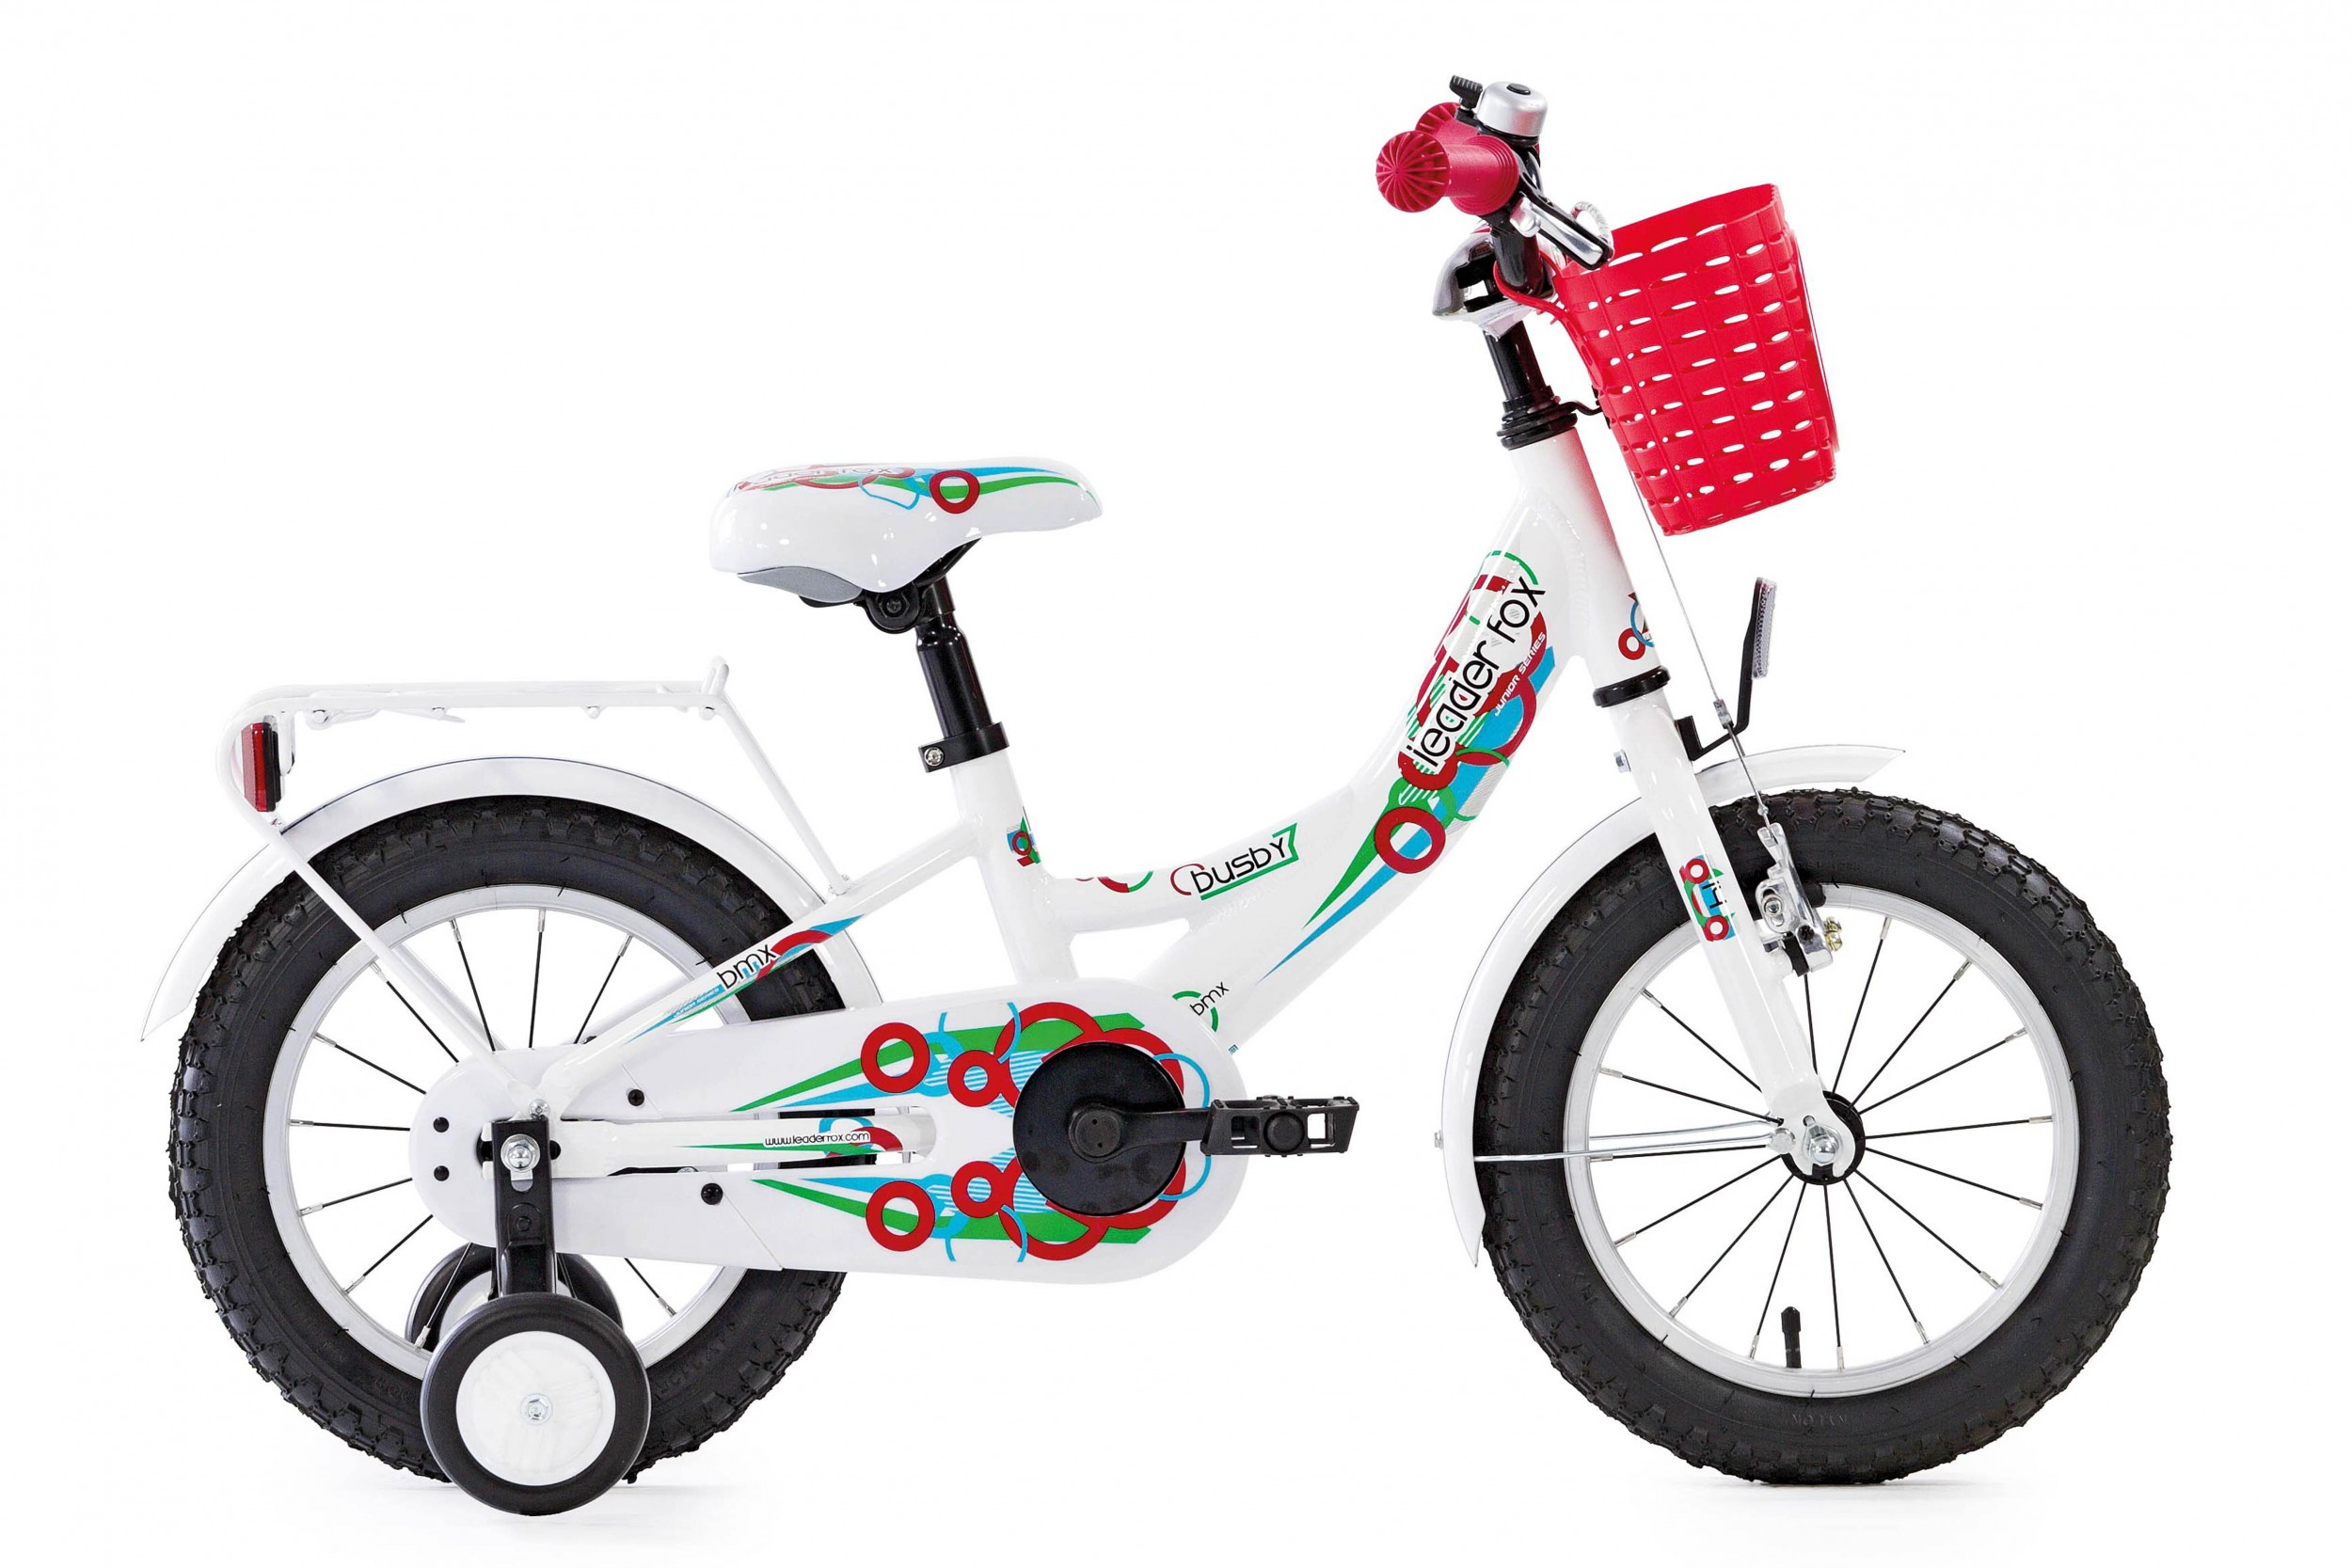 Leader Fox Busby Girls Bicycle 14 Inch 20cm - White